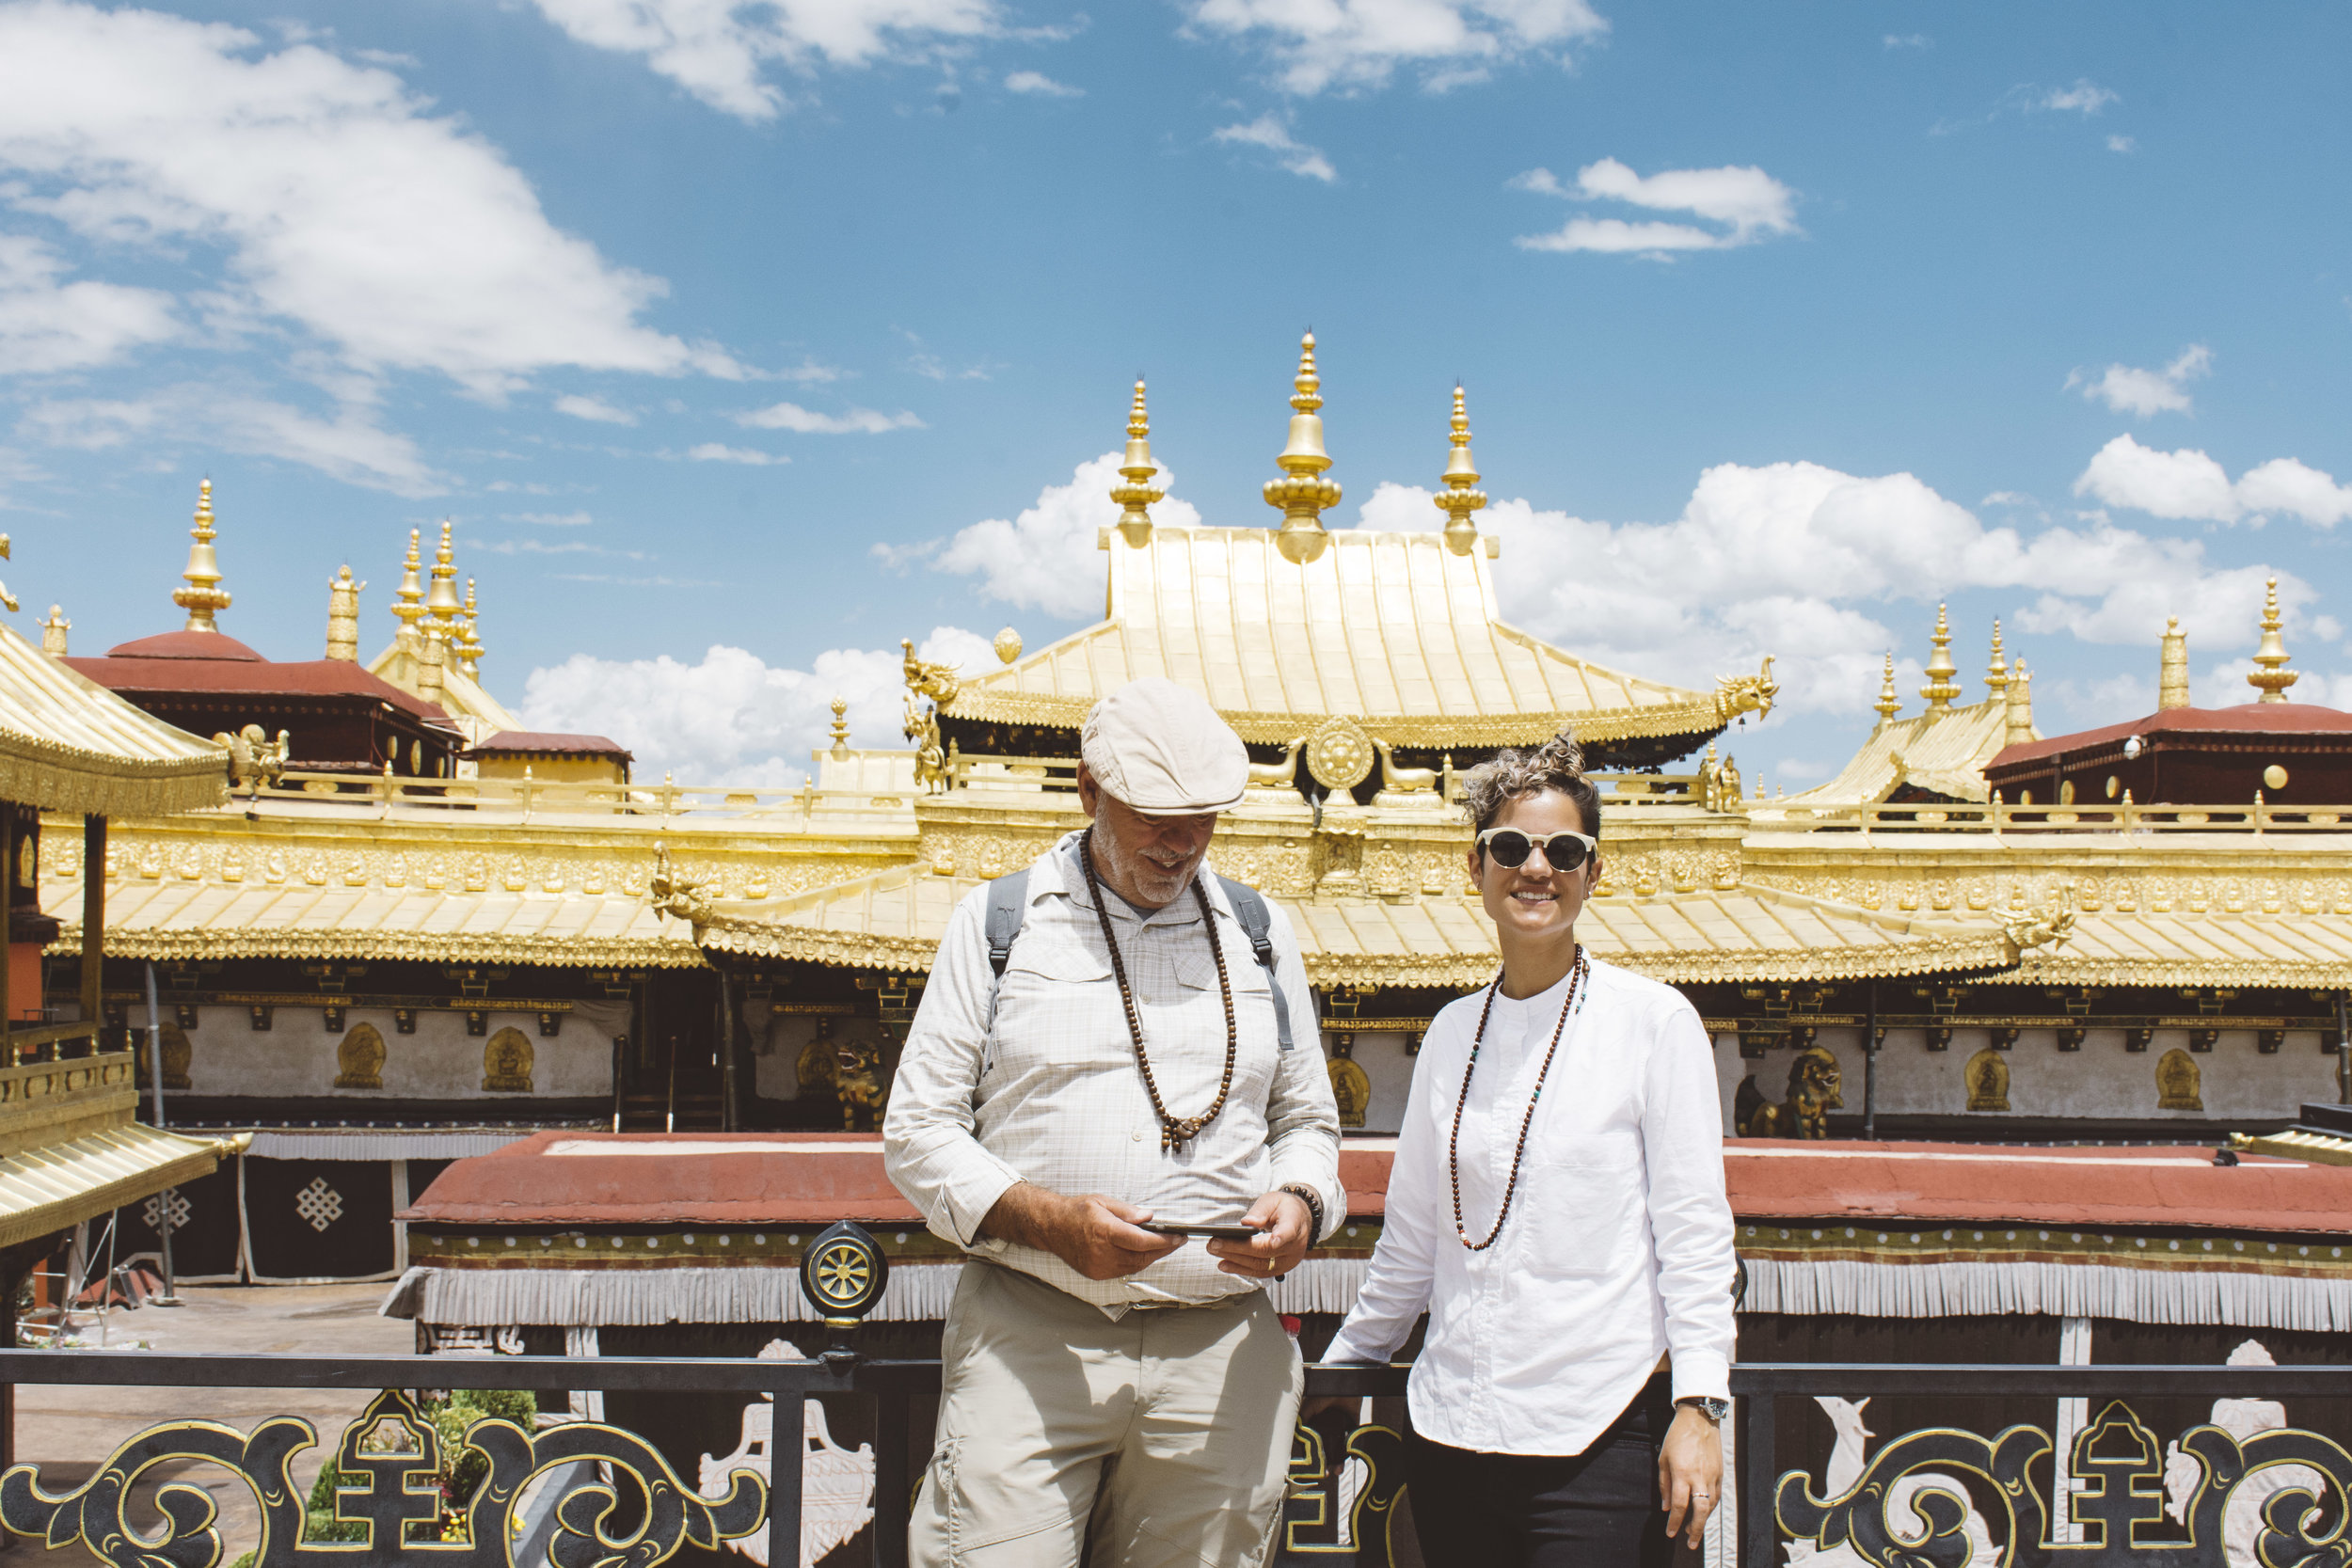 Need some gold? Tibet's Jokhang Temple seems to have more gold than the entire country.